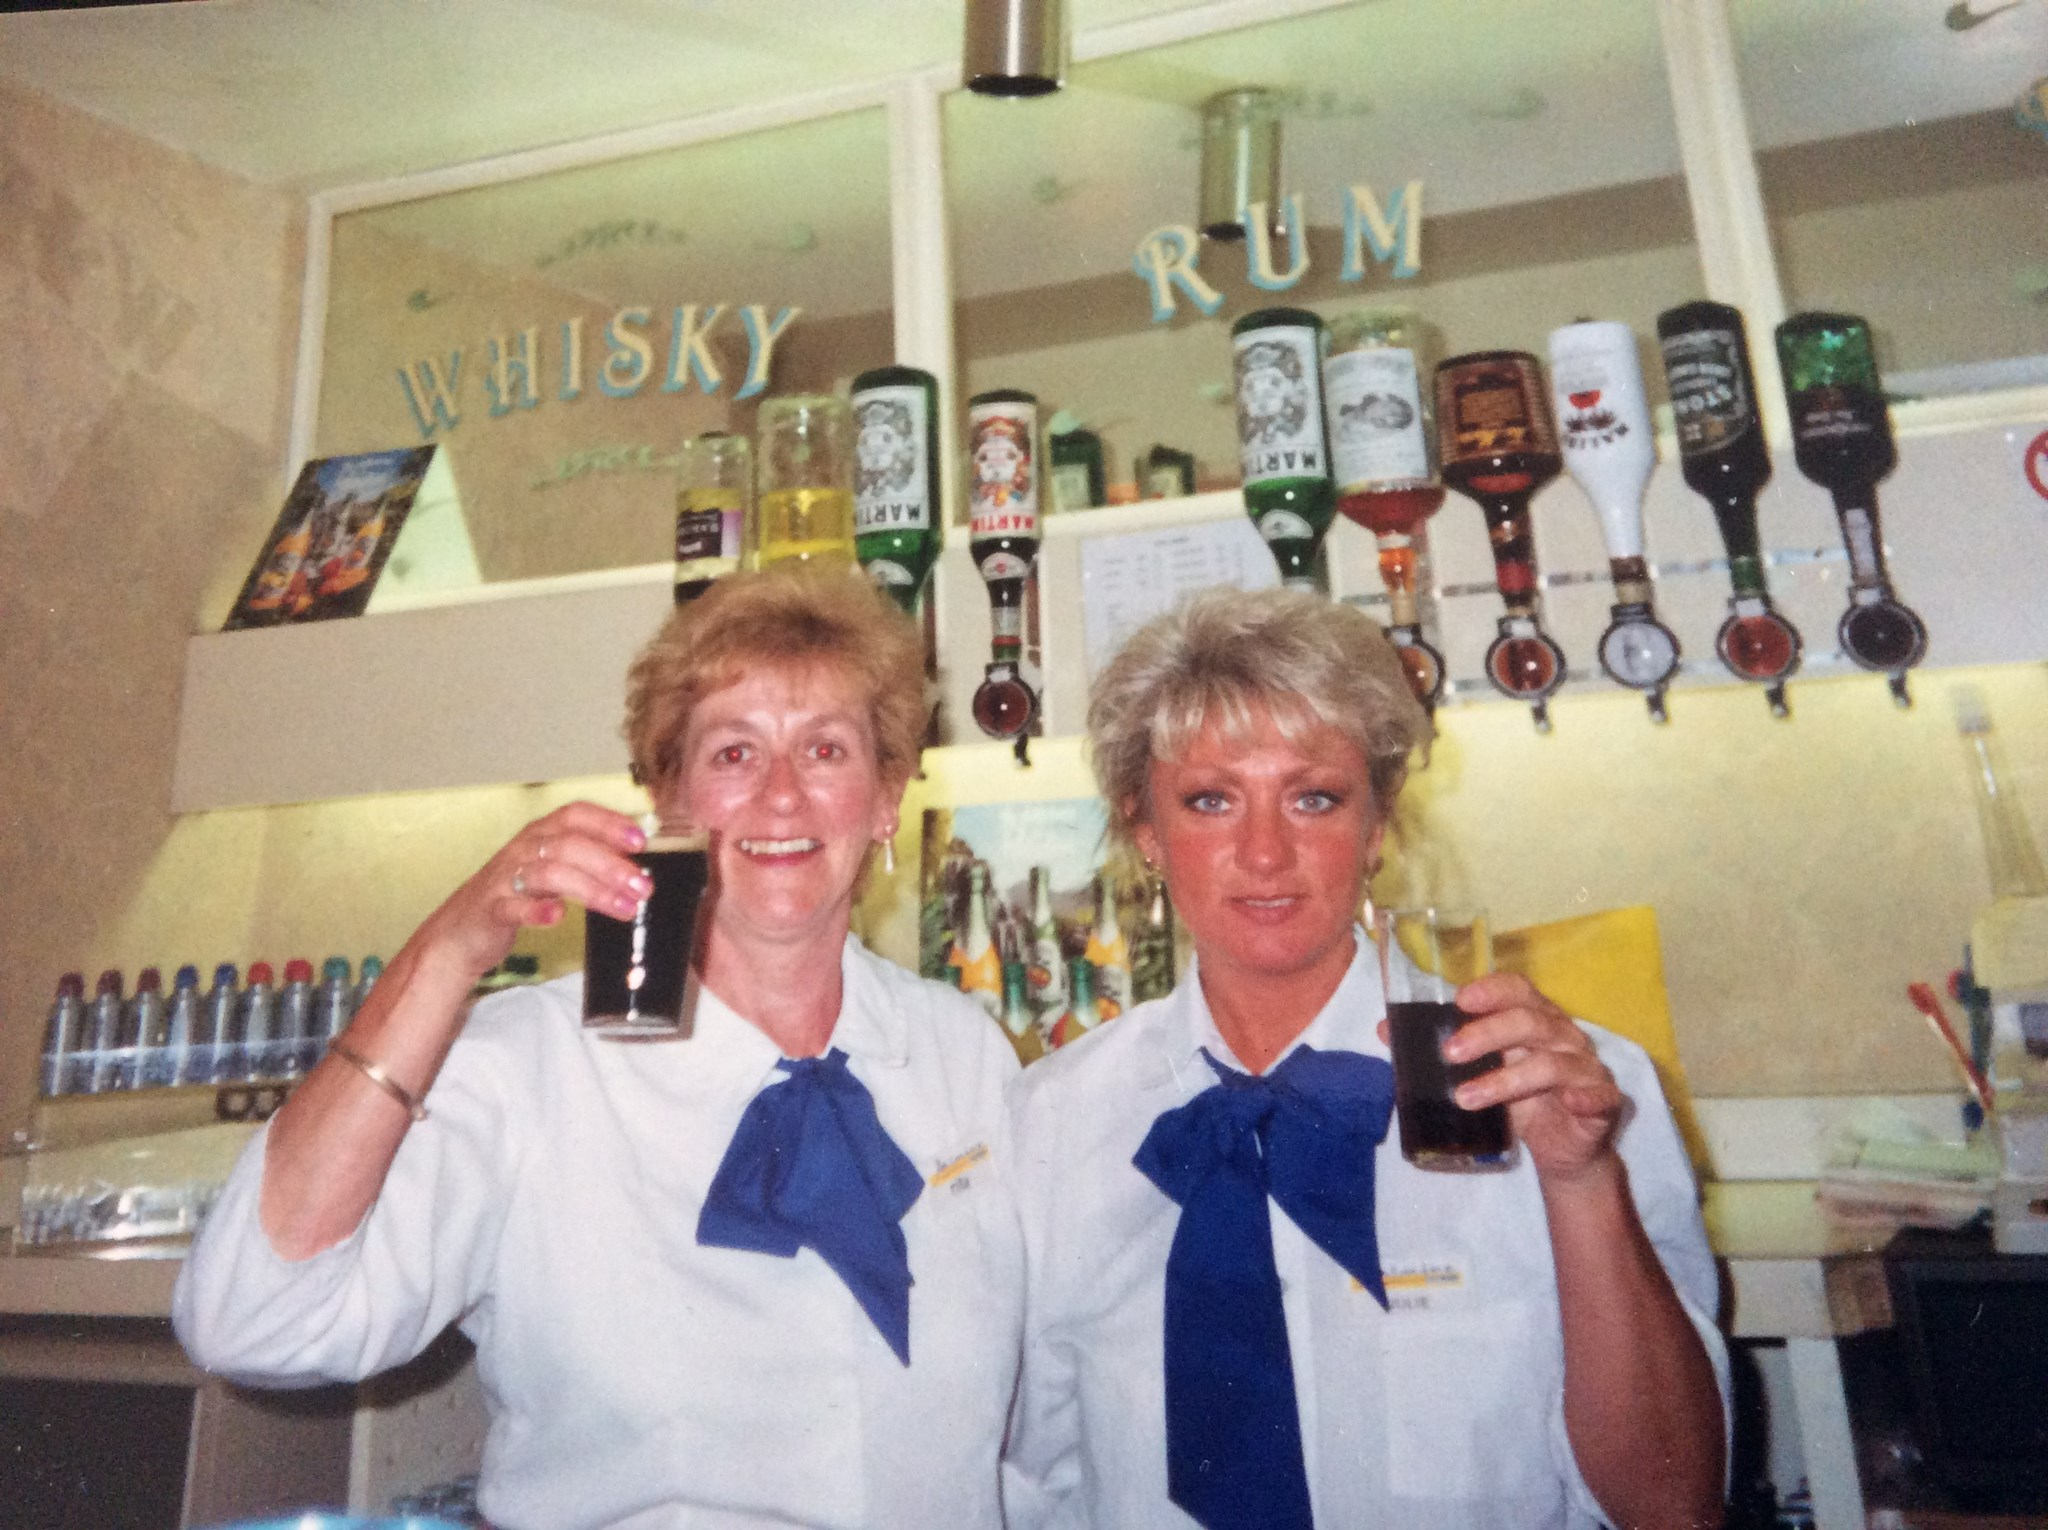 My lovely friend Rita, I will always remember with fond memories the time we spent laughing. You were a very special part of my life and I feel honoured to call you my friend . R.I.P beautiful lady xxxxxxx